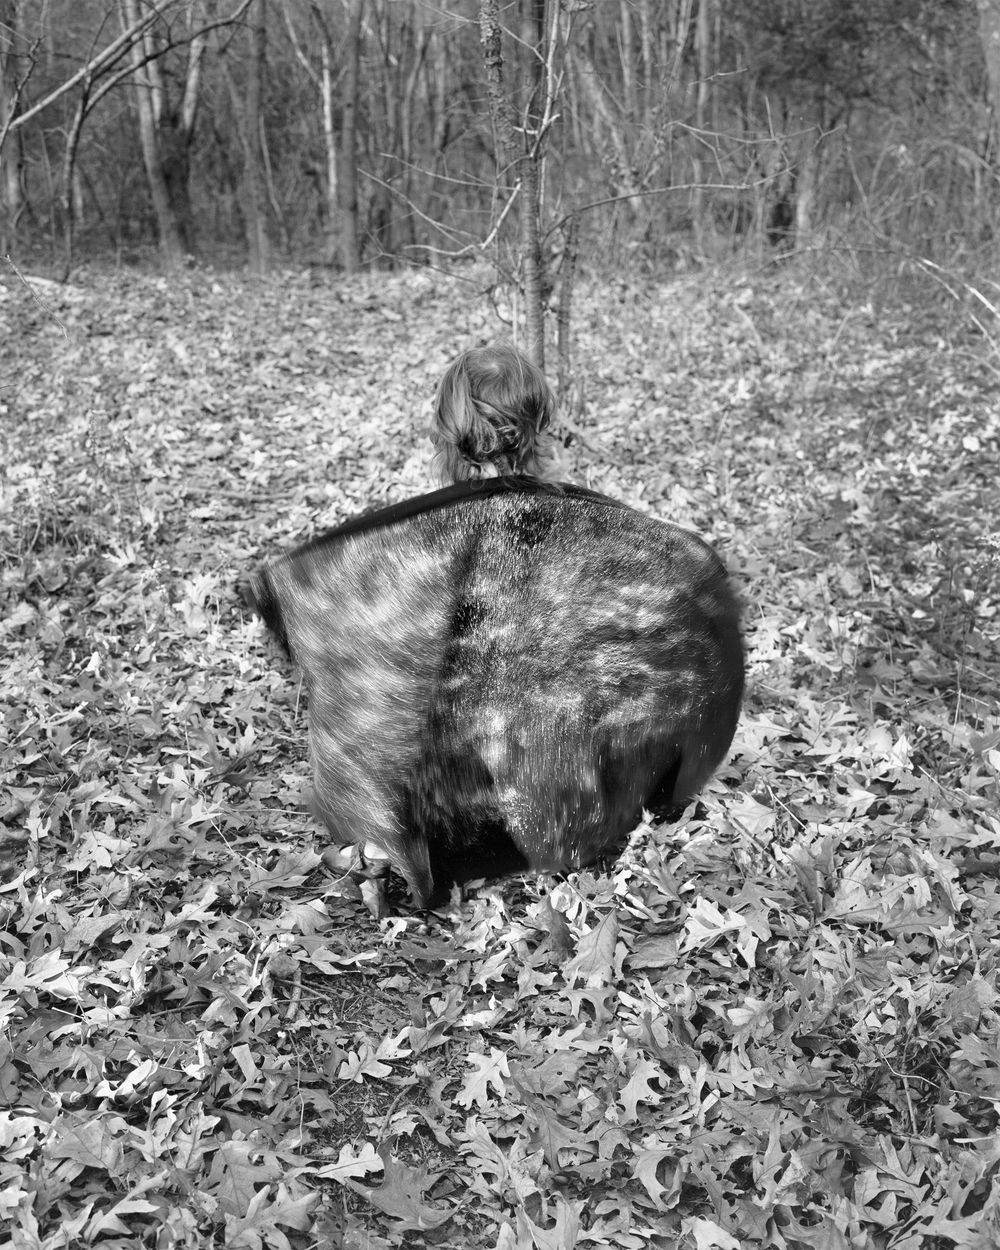 Sparkle, Fur, Autumn Spell , 2011 Archival pigment print mounted to rag board 19 x 23.75 in (48.26 x 60.33 cm)